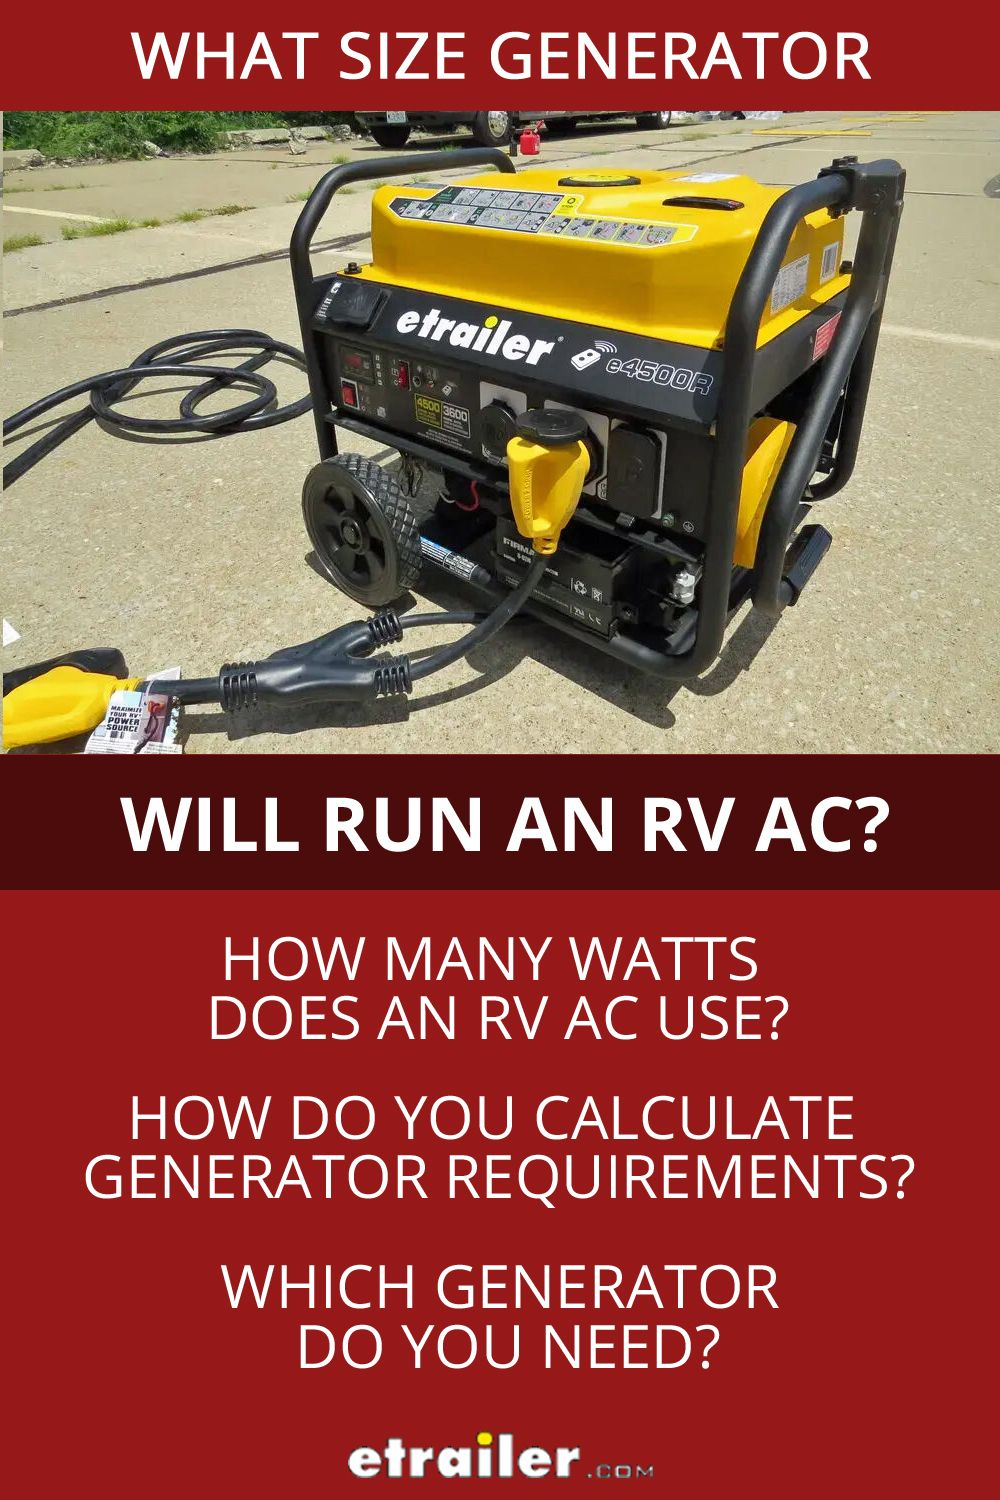 What Size Generator Do You Need to Run an RV Air